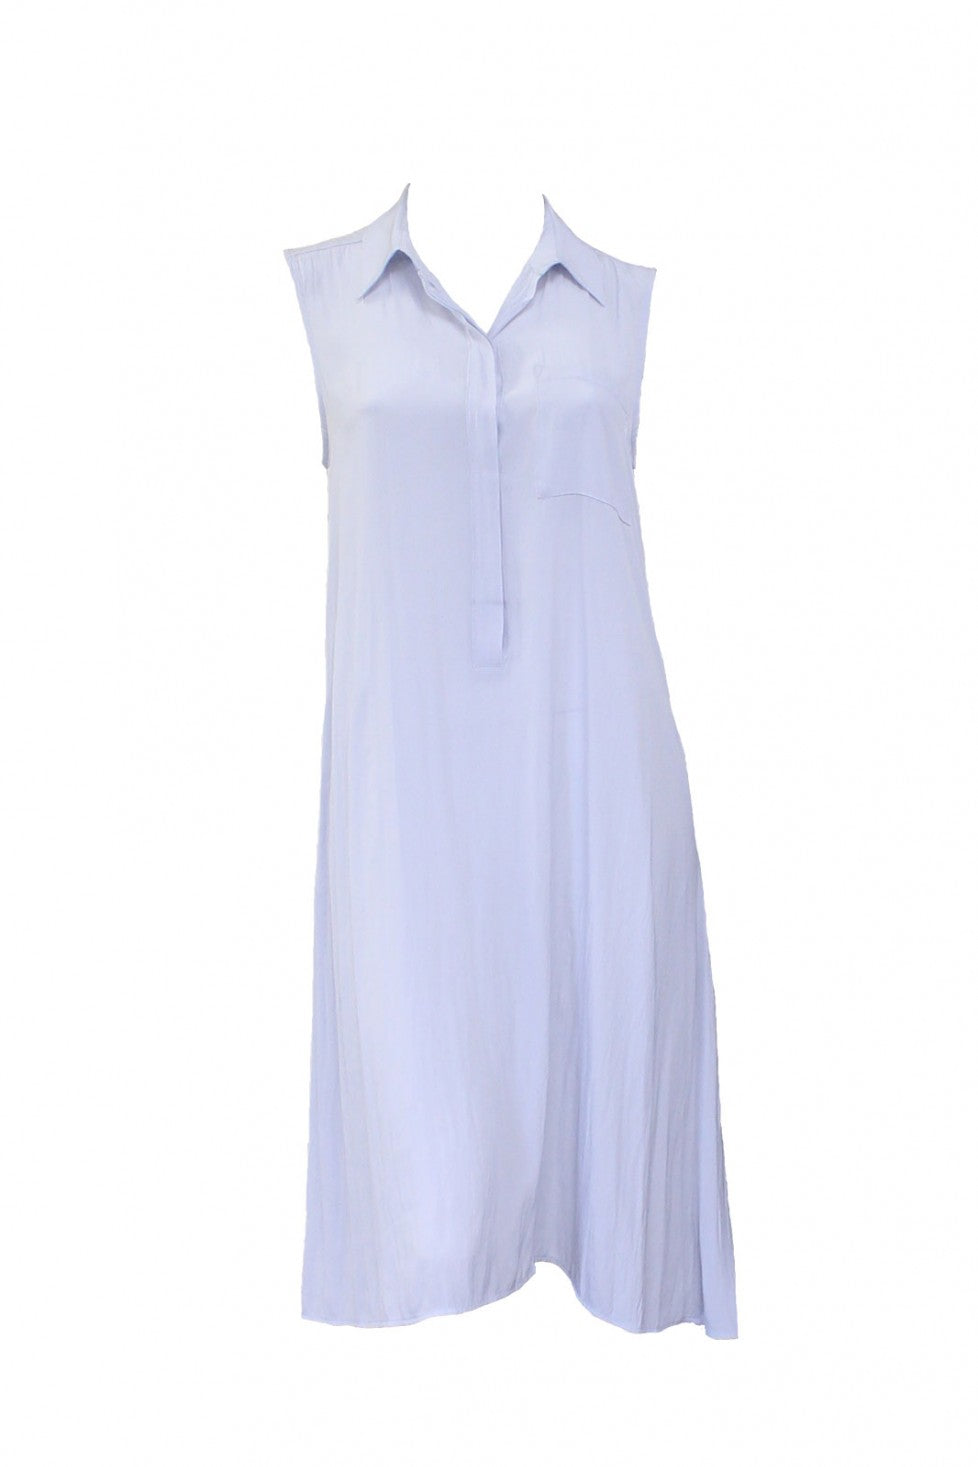 Vapour Front Mela Purdie Sleeveless Shirt Dress Style and Grace